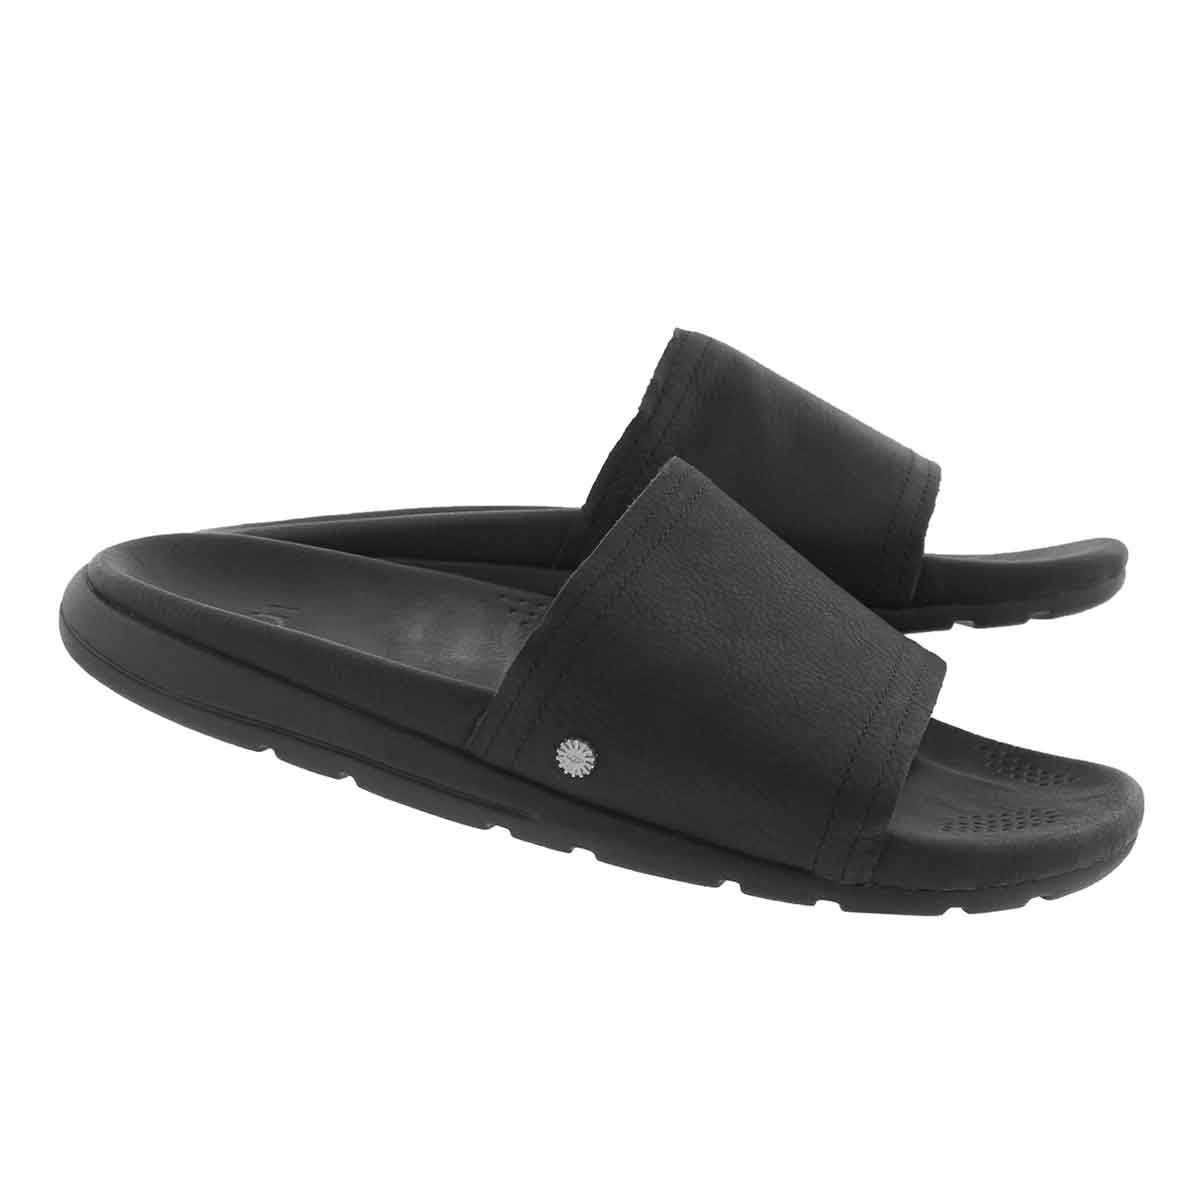 Mns Xavier Luxe blk casual slide sandal